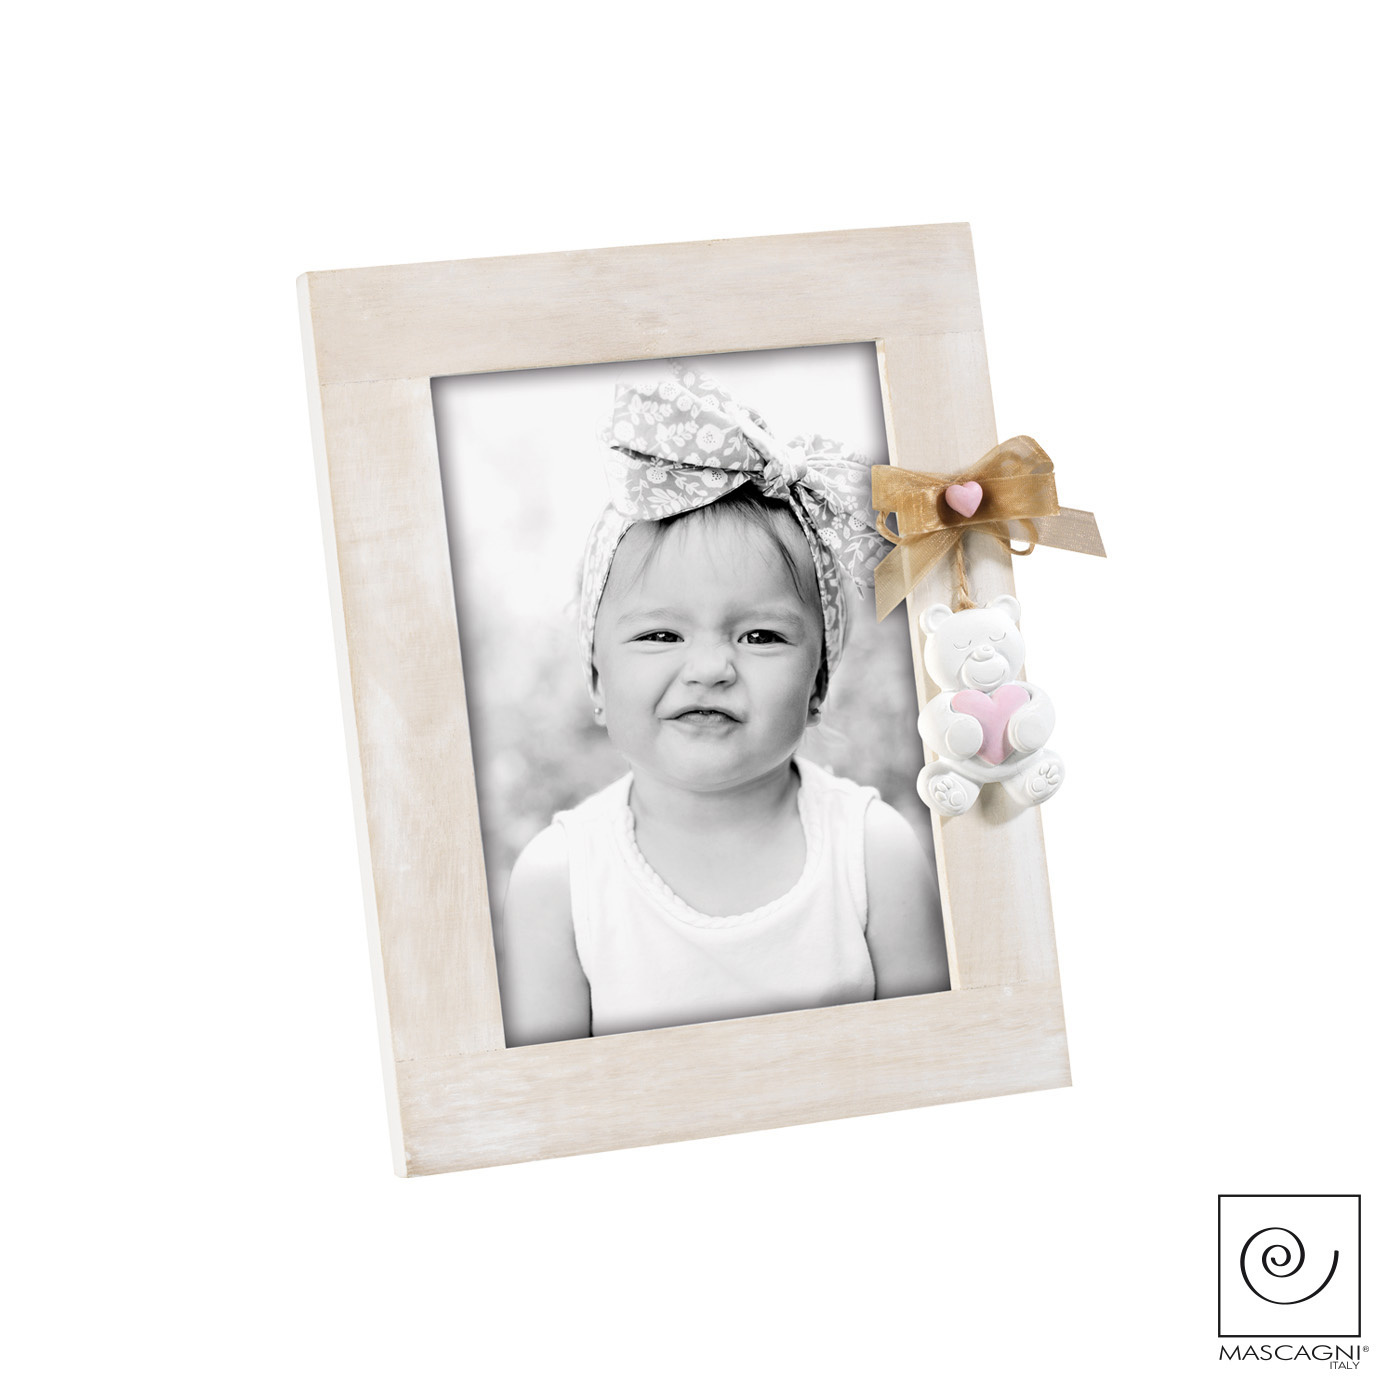 Art Mascagni A957 PHOTO FRAME 10X10 - COL.PINK